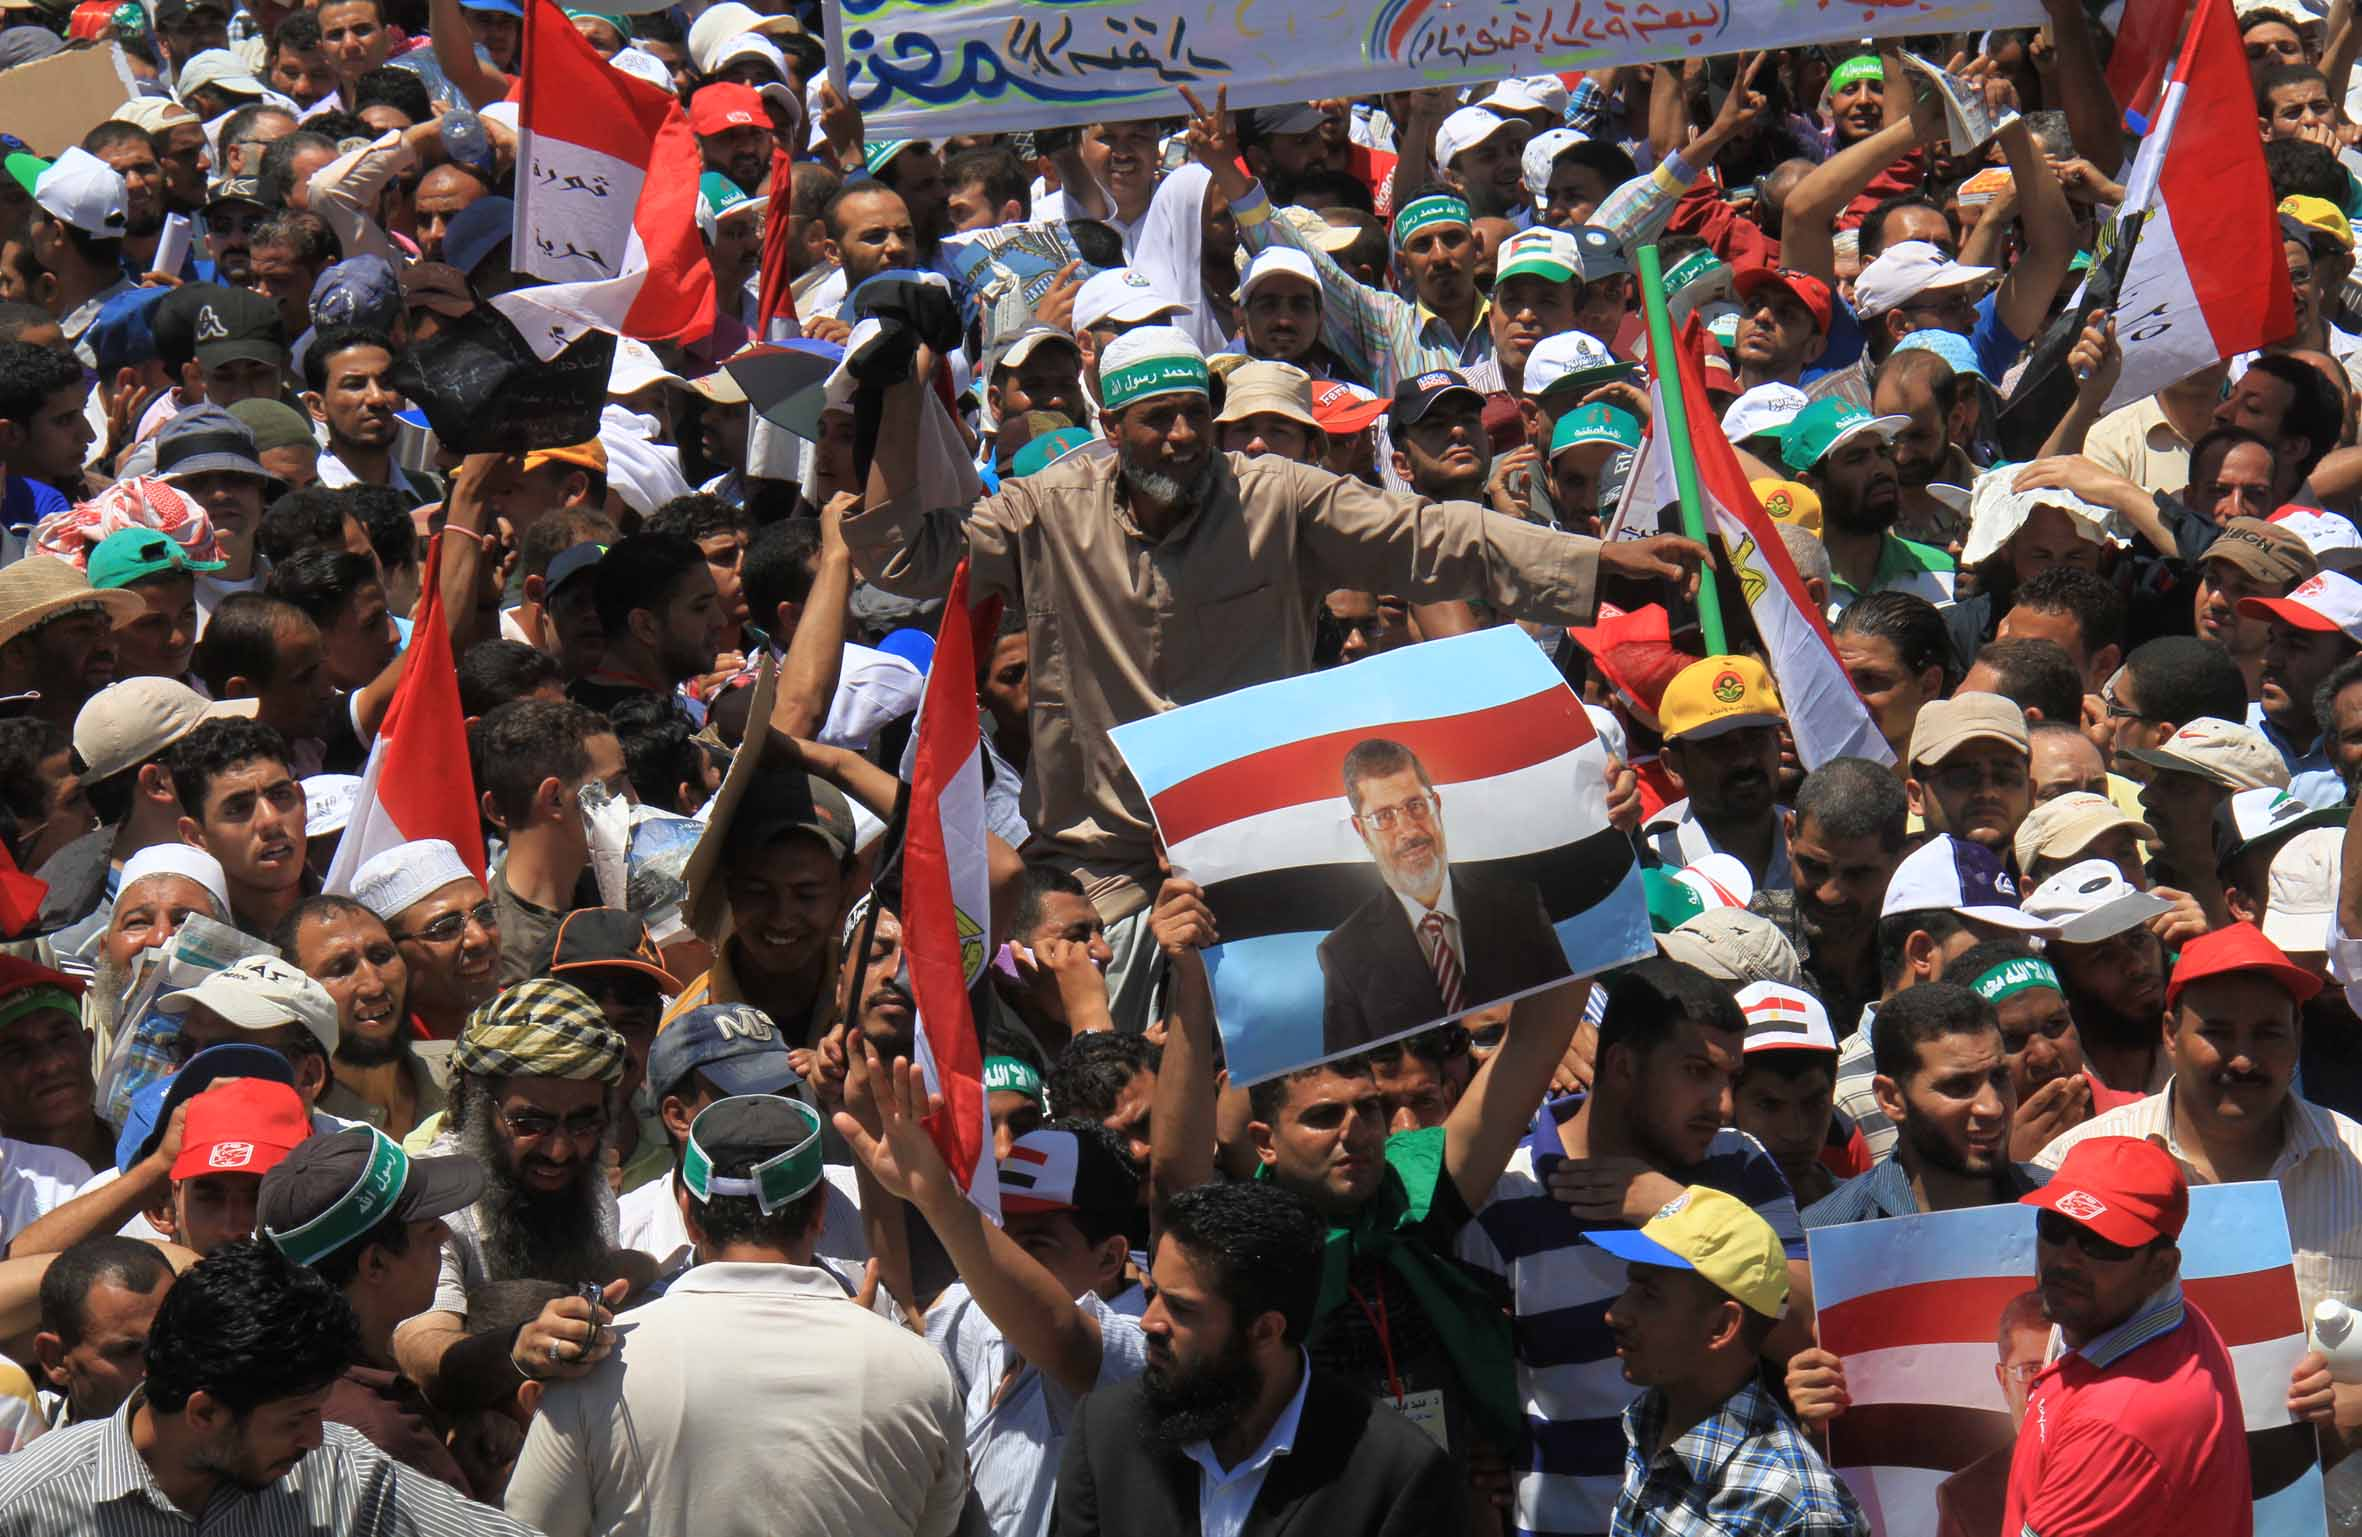 Rabaa Al Adaweya pro-Morsi sit it which has been ongoing for over three weeks (File Photo by Mohamed Omar/DNE)